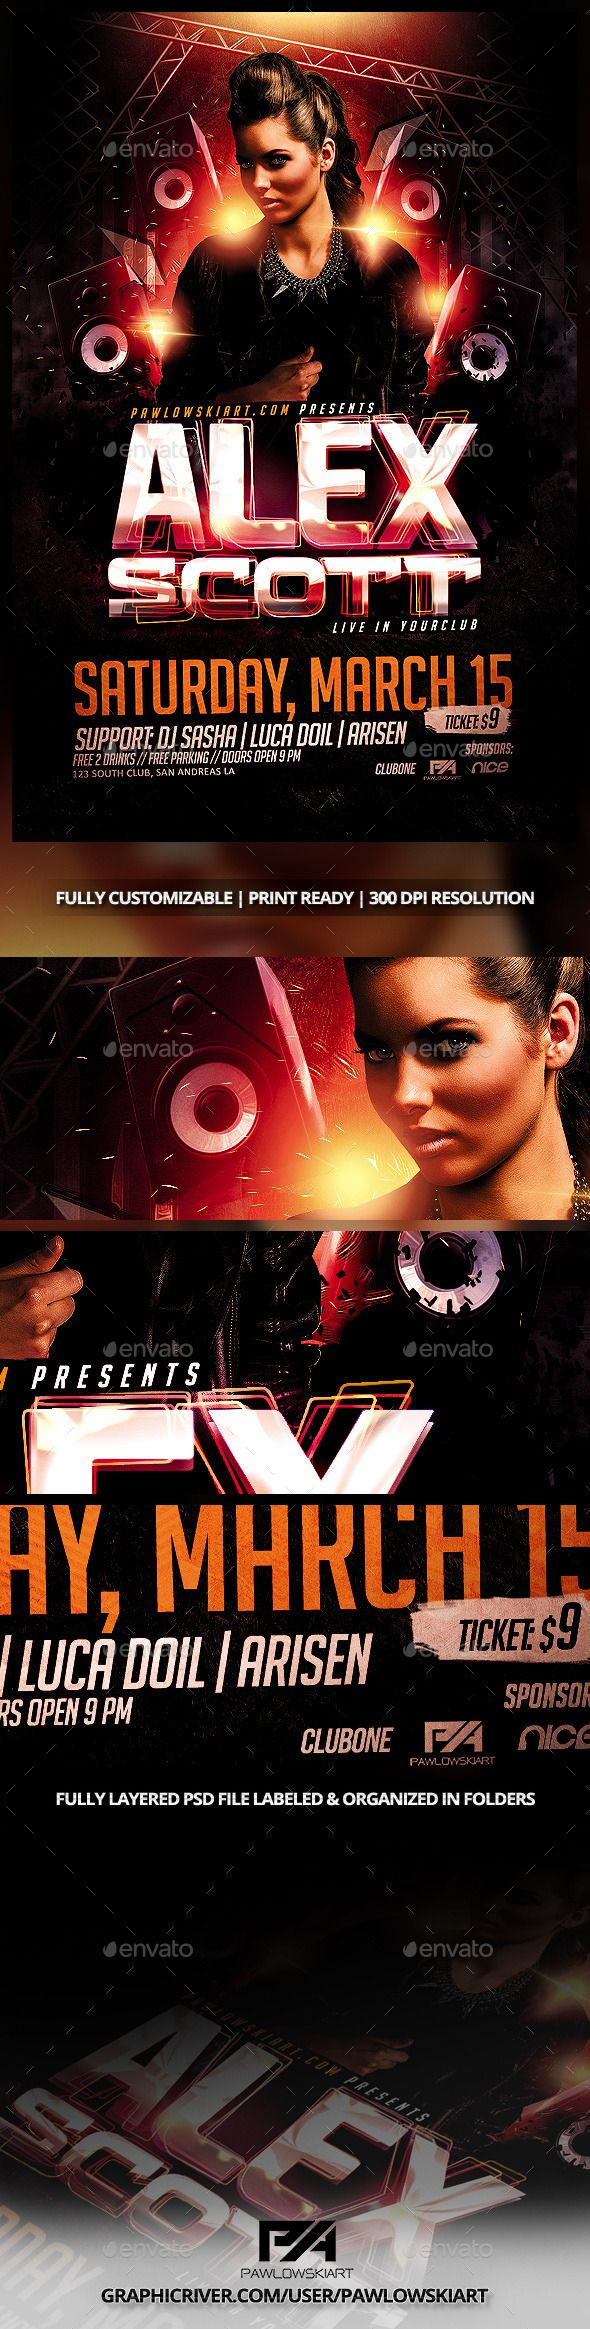 DJ Electro v3 Party Flyer PSD Template (CS, 4x6, artist, club, colorful, concert, design, dj, dj flyer, dj promote, effects, electro, electronic, festival, girl, glass, grunge, house, lights, minimal, mix, party, pawlowskiart, sexy, show, speakers, Special Guest, techno, trance)